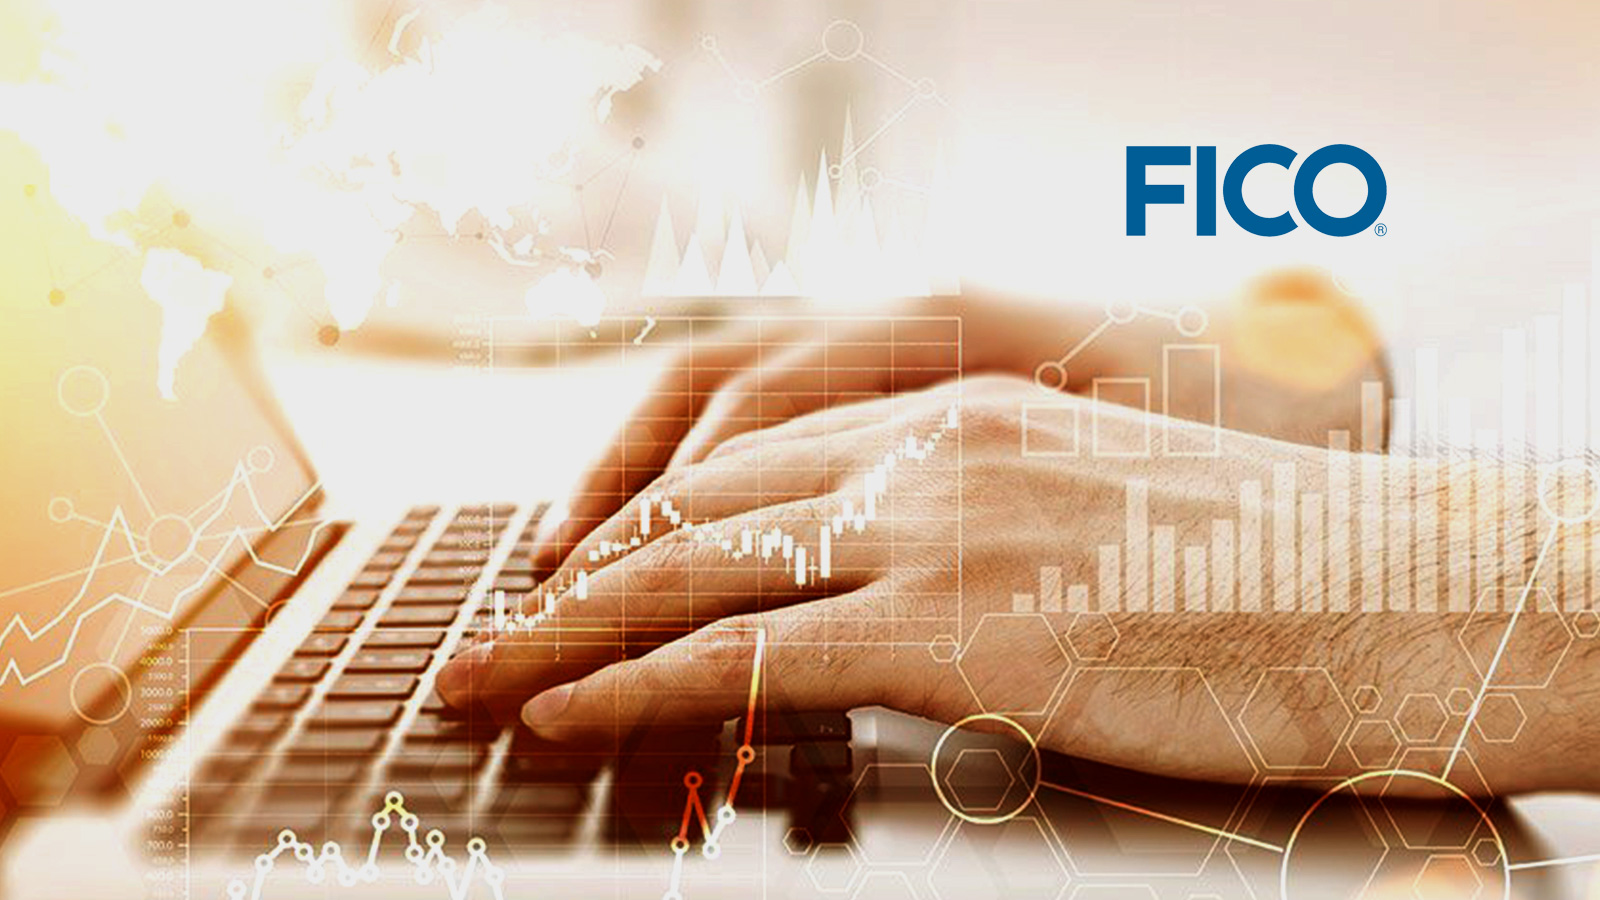 FICO Recognized Financial Services Solution Vendor on the